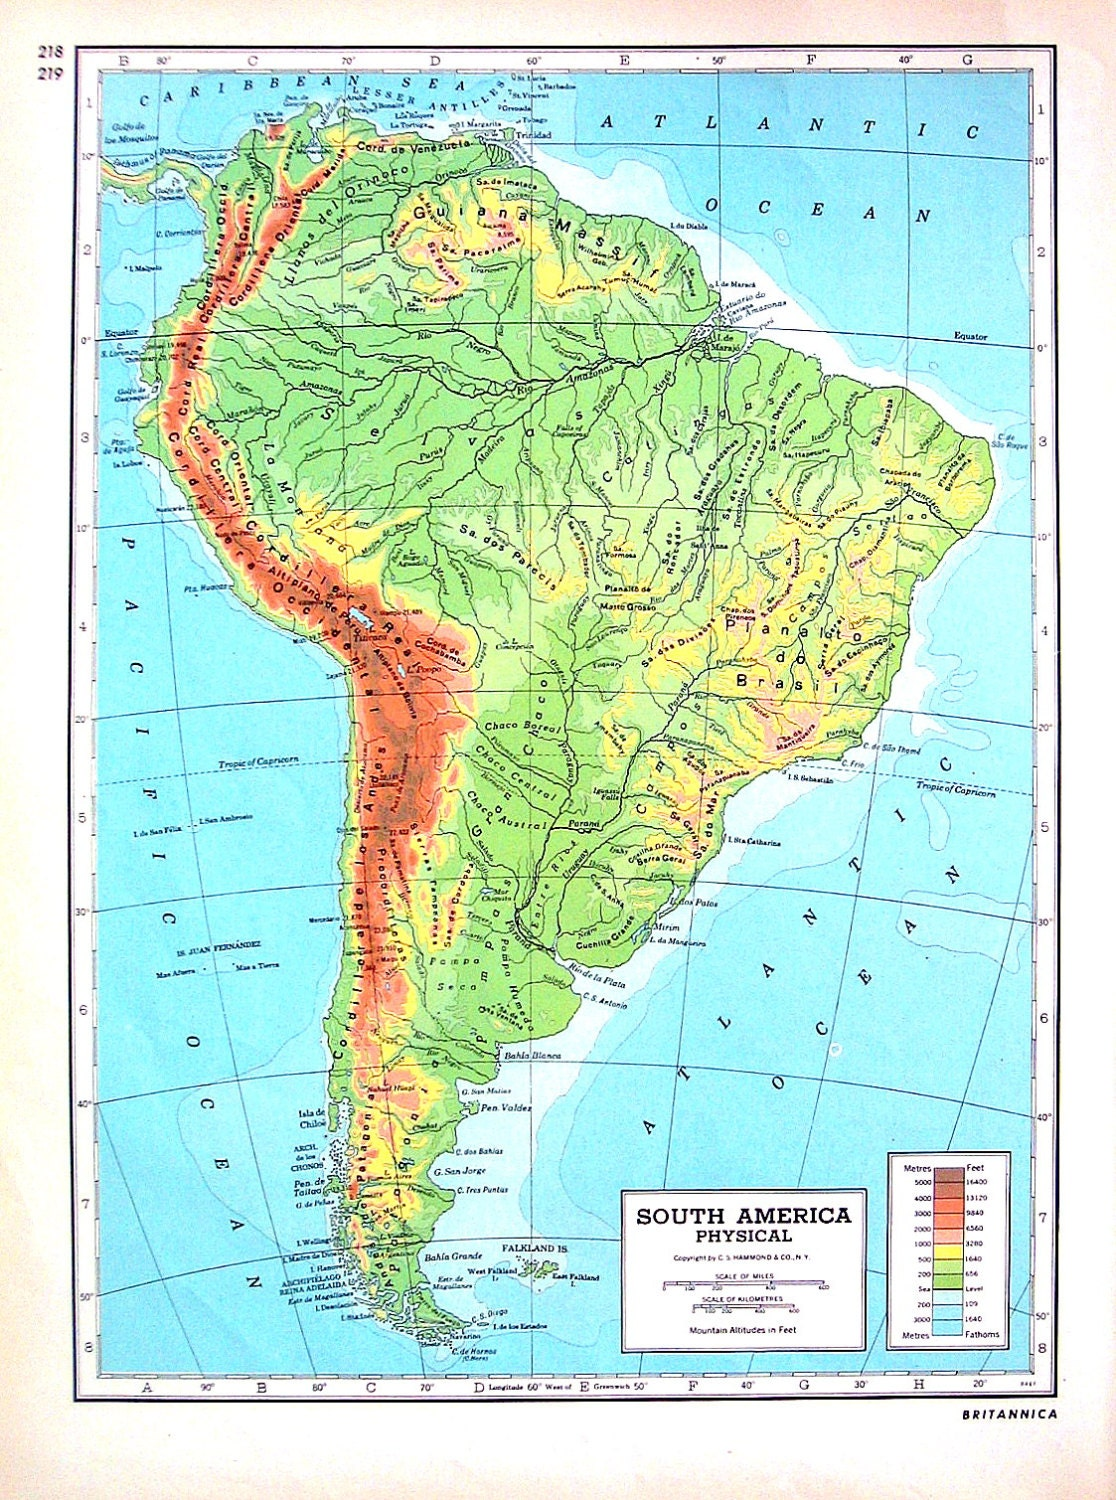 Australia South America Physical Map 1947 Large 2 Sided